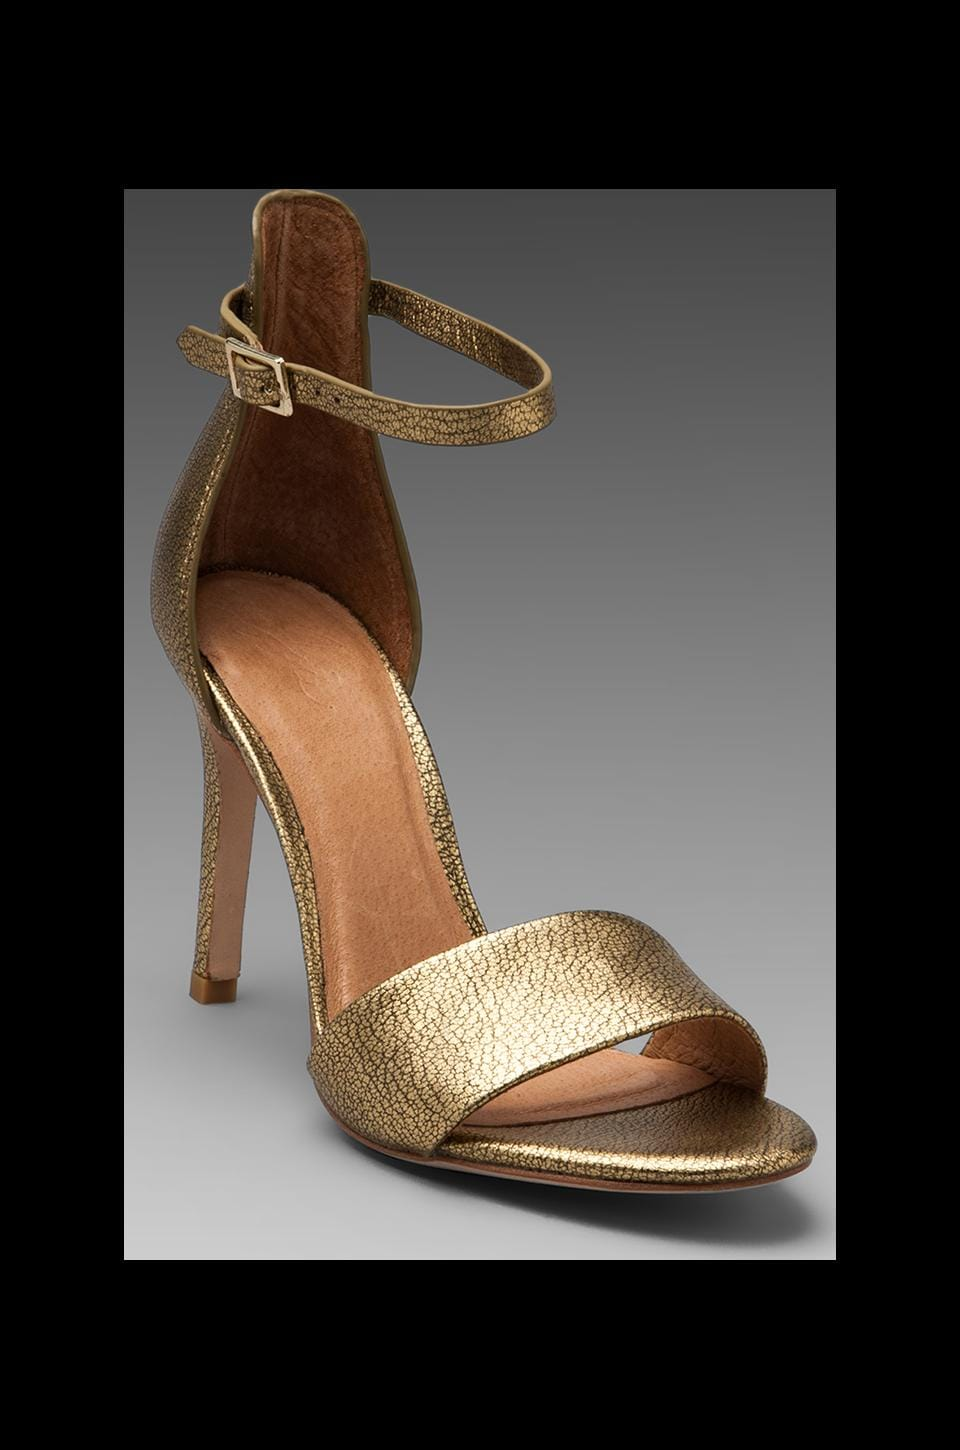 Joie Jaclyn Sandal in Gold